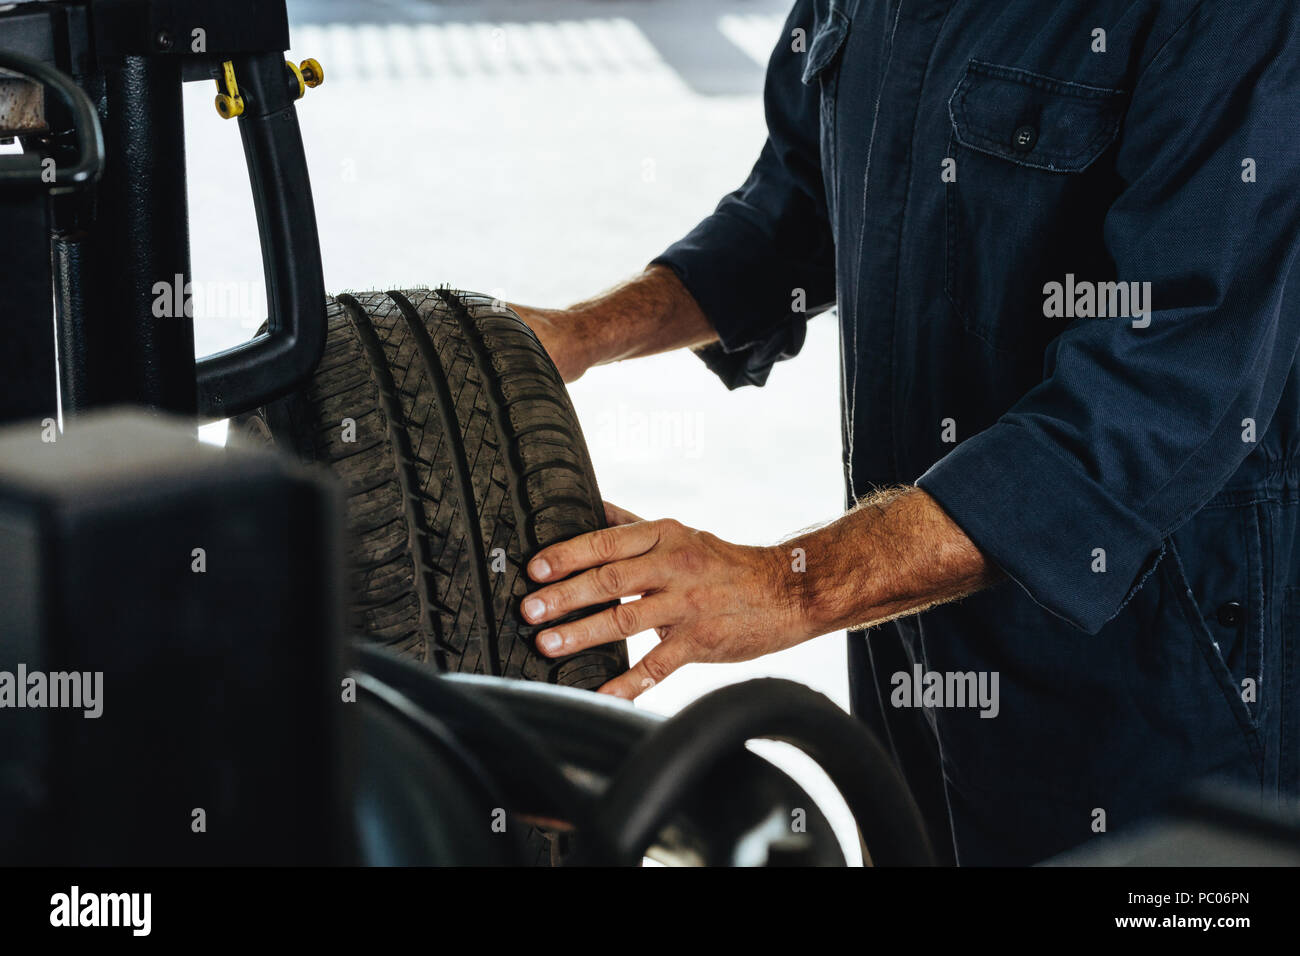 Cropped shot of a mechanic checking the condition of a automobile wheel. Man examining the wear and tear of car tire in garage. - Stock Image